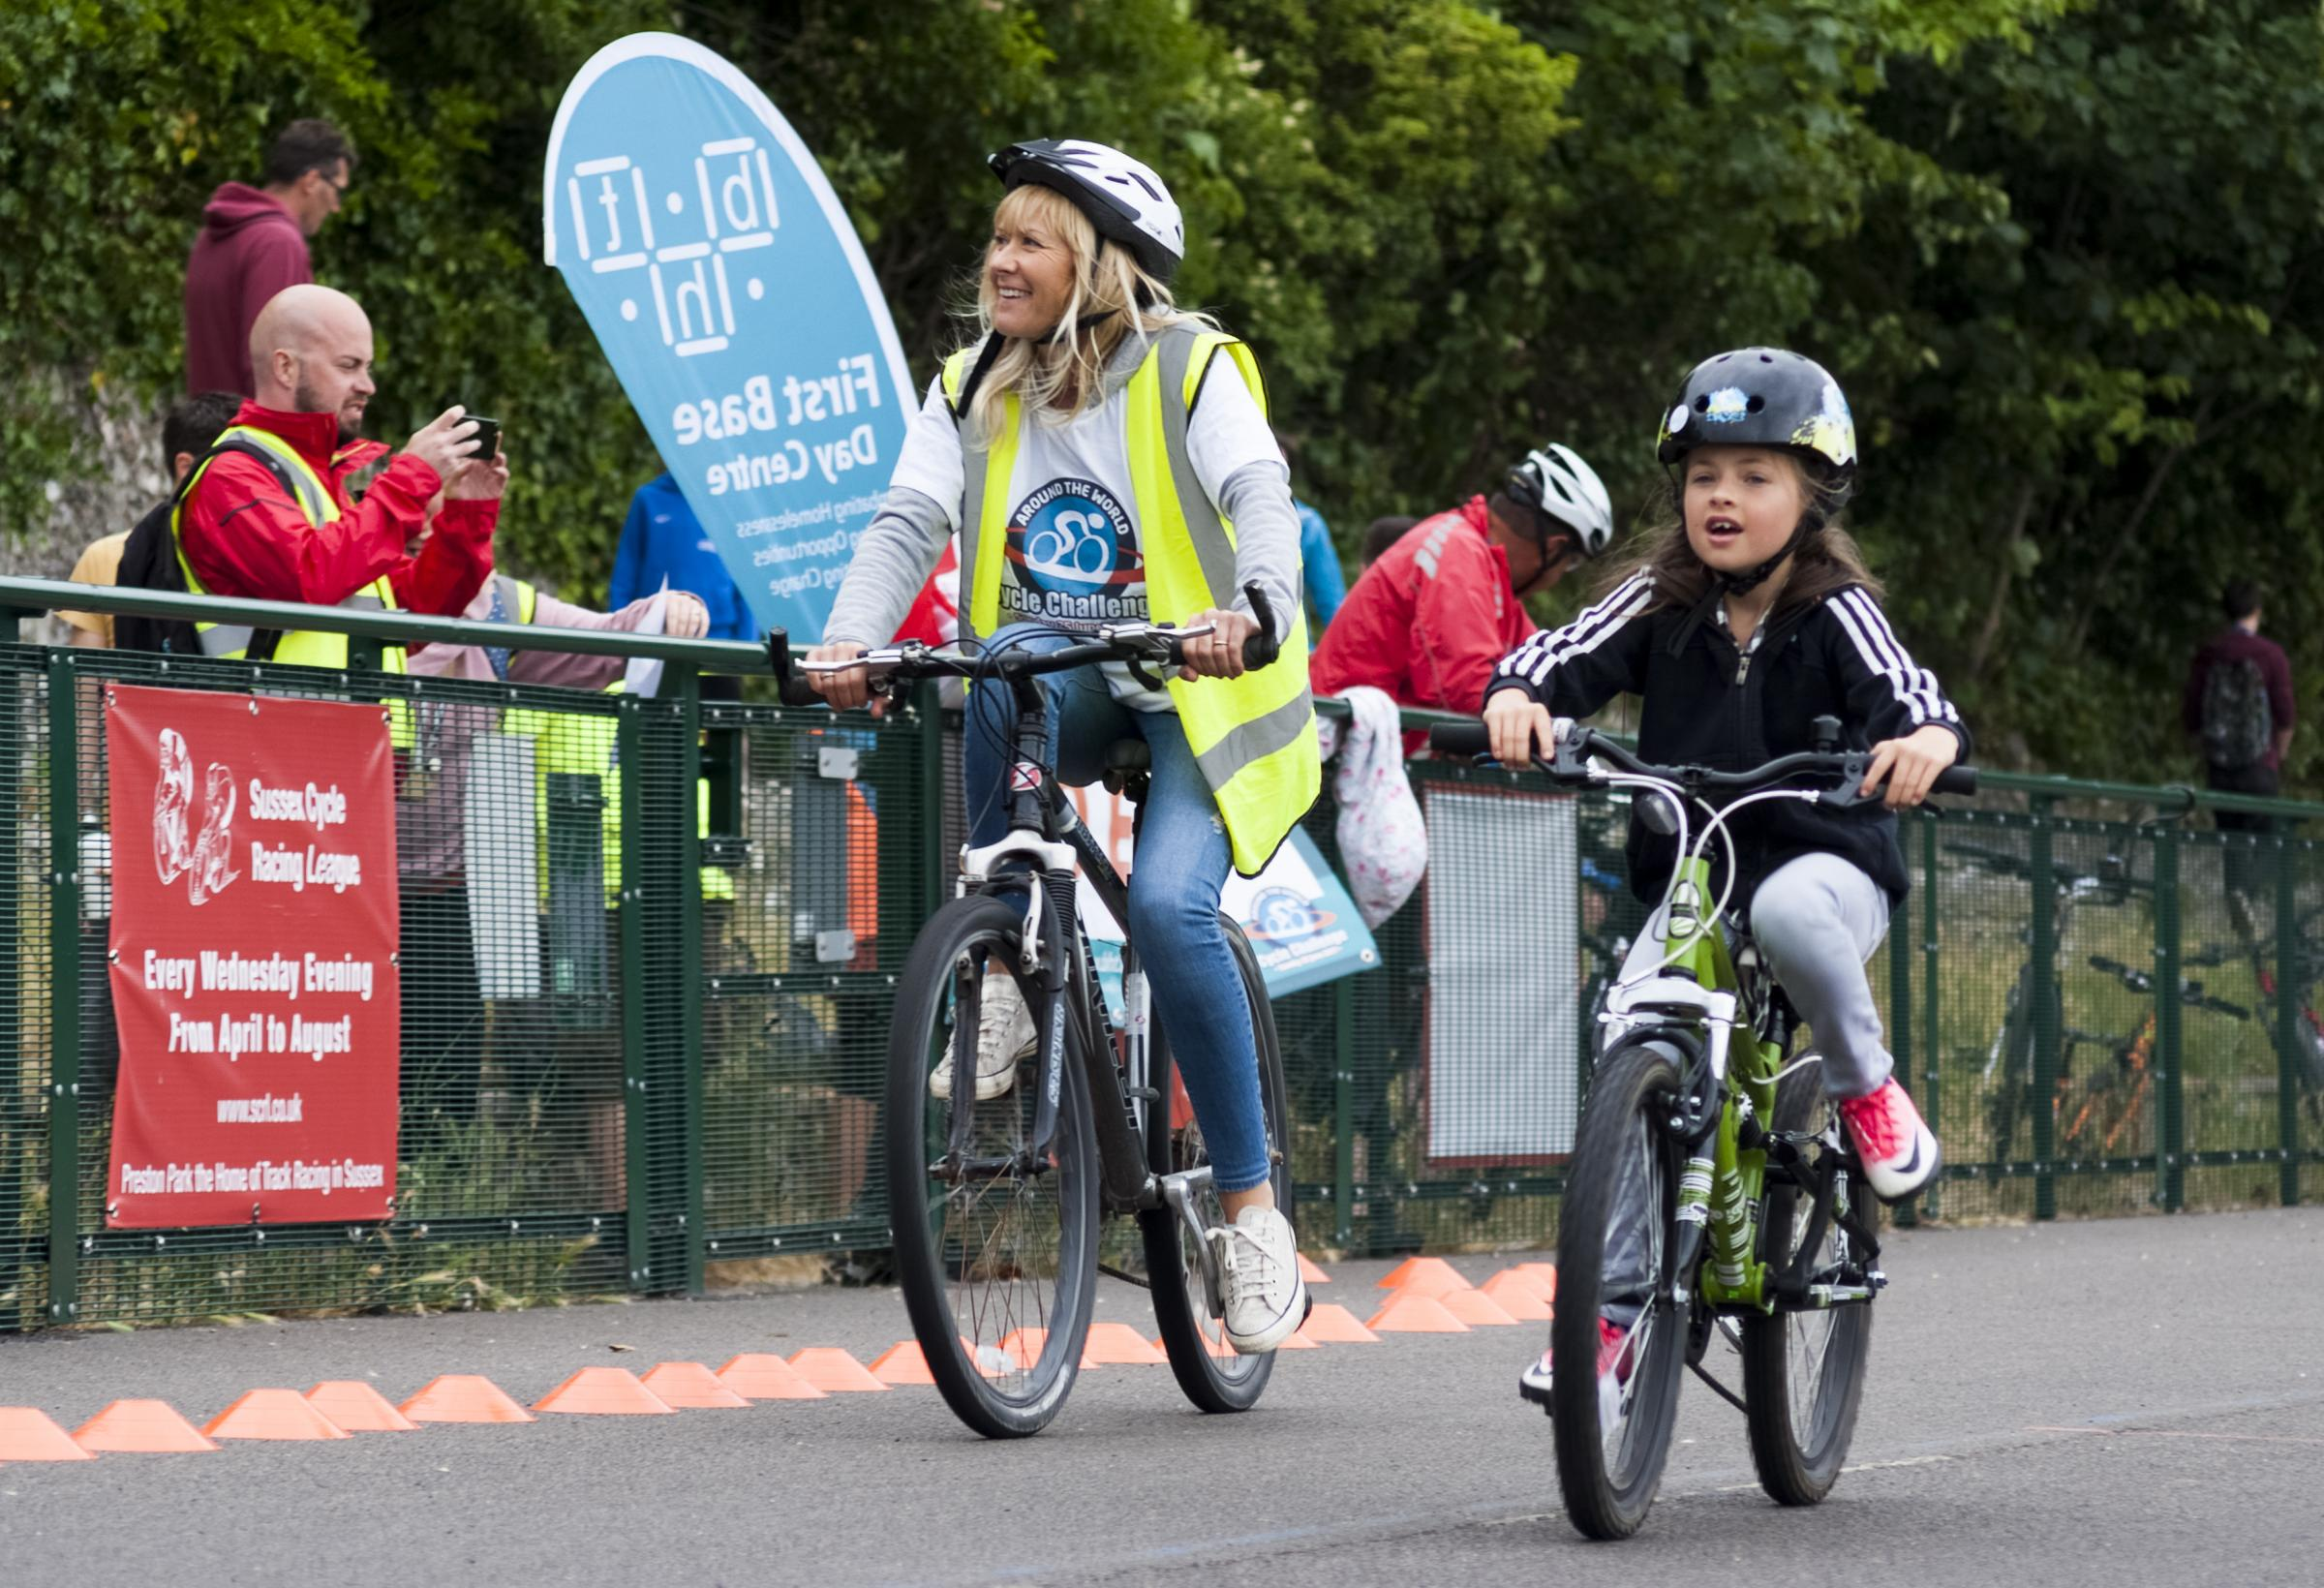 The Greater Brighton Cycle Challenge